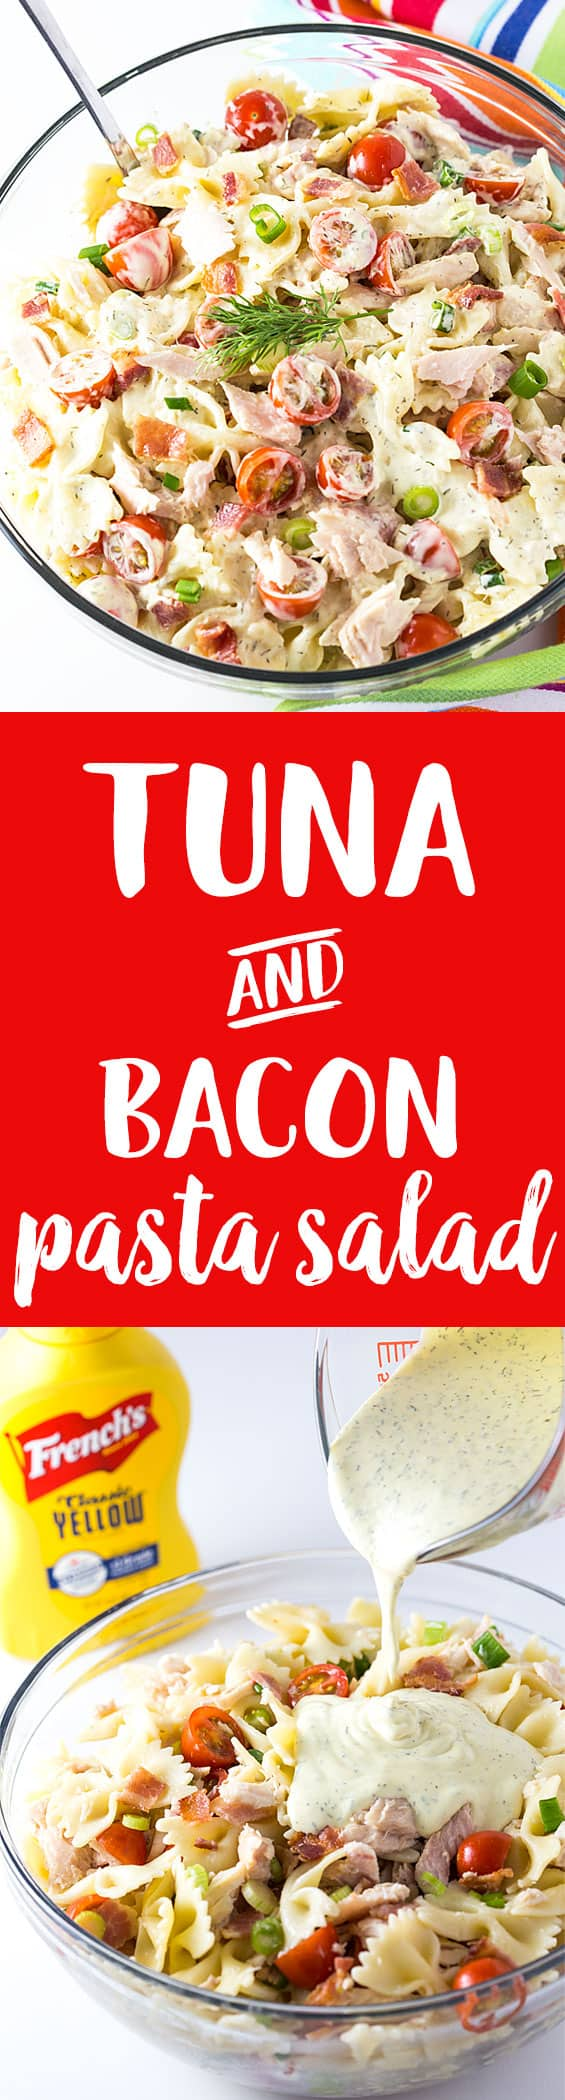 A two image vertical collage of tuna and bacon pasta salad with overlay text in the center.